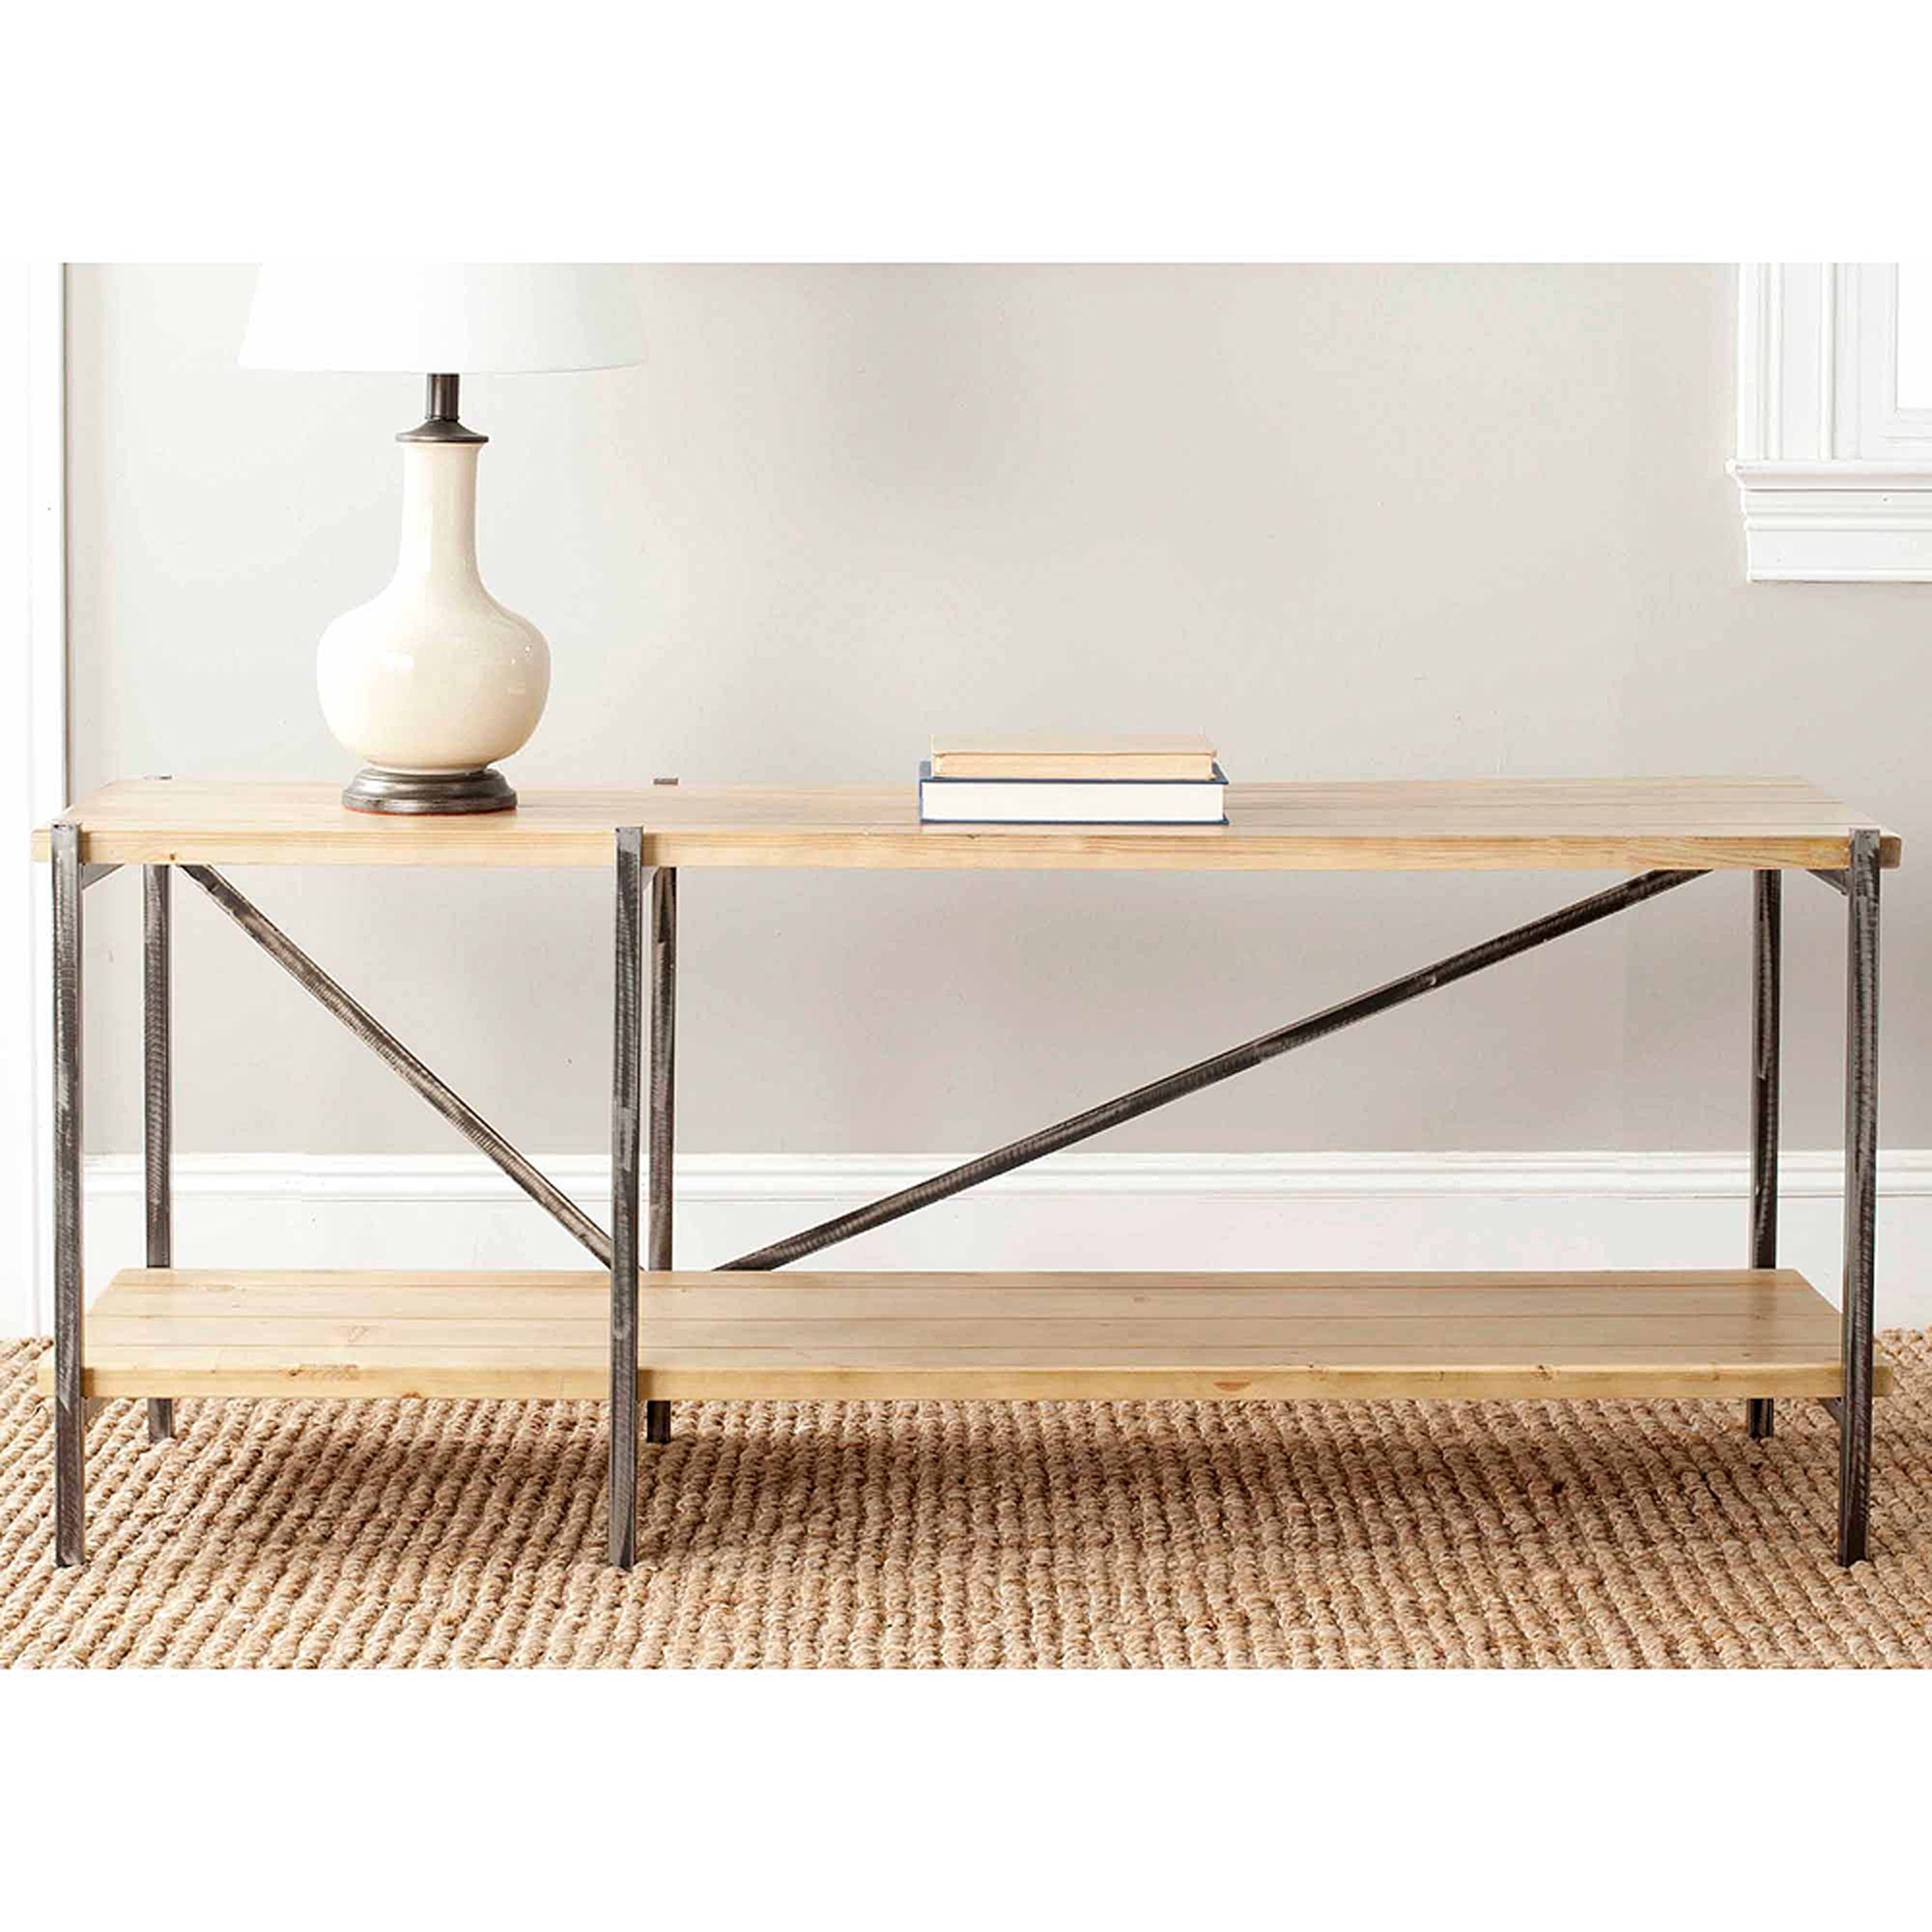 Safavieh Theodore Fir Wood Console, Natural Color